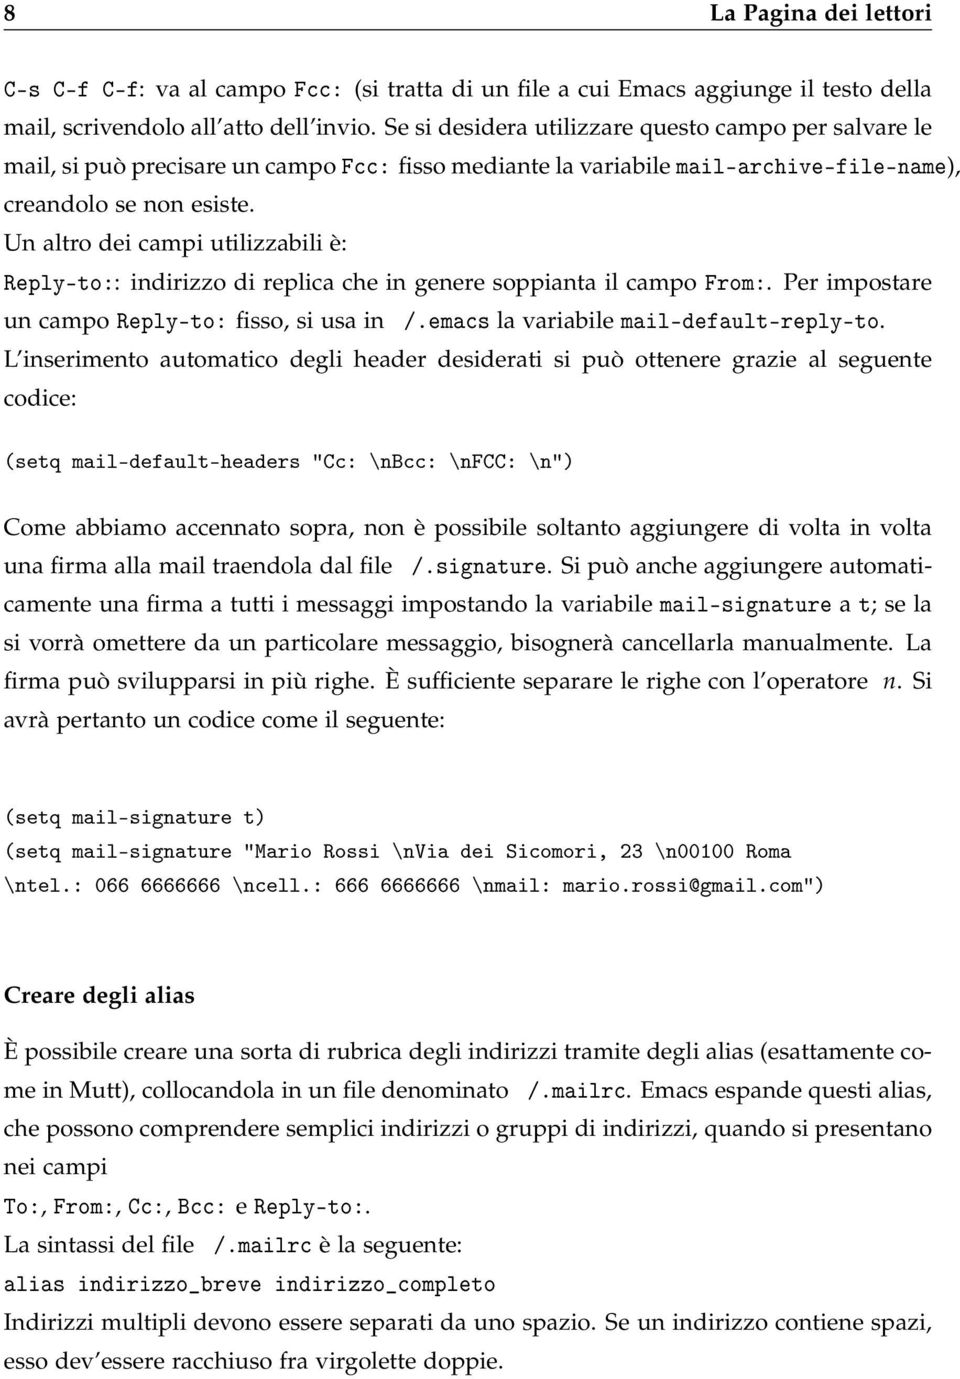 Un altro dei campi utilizzabili è: Reply-to:: indirizzo di replica che in genere soppianta il campo From:. Per impostare un campo Reply-to: fisso, si usa in /.emacs la variabile mail-default-reply-to.